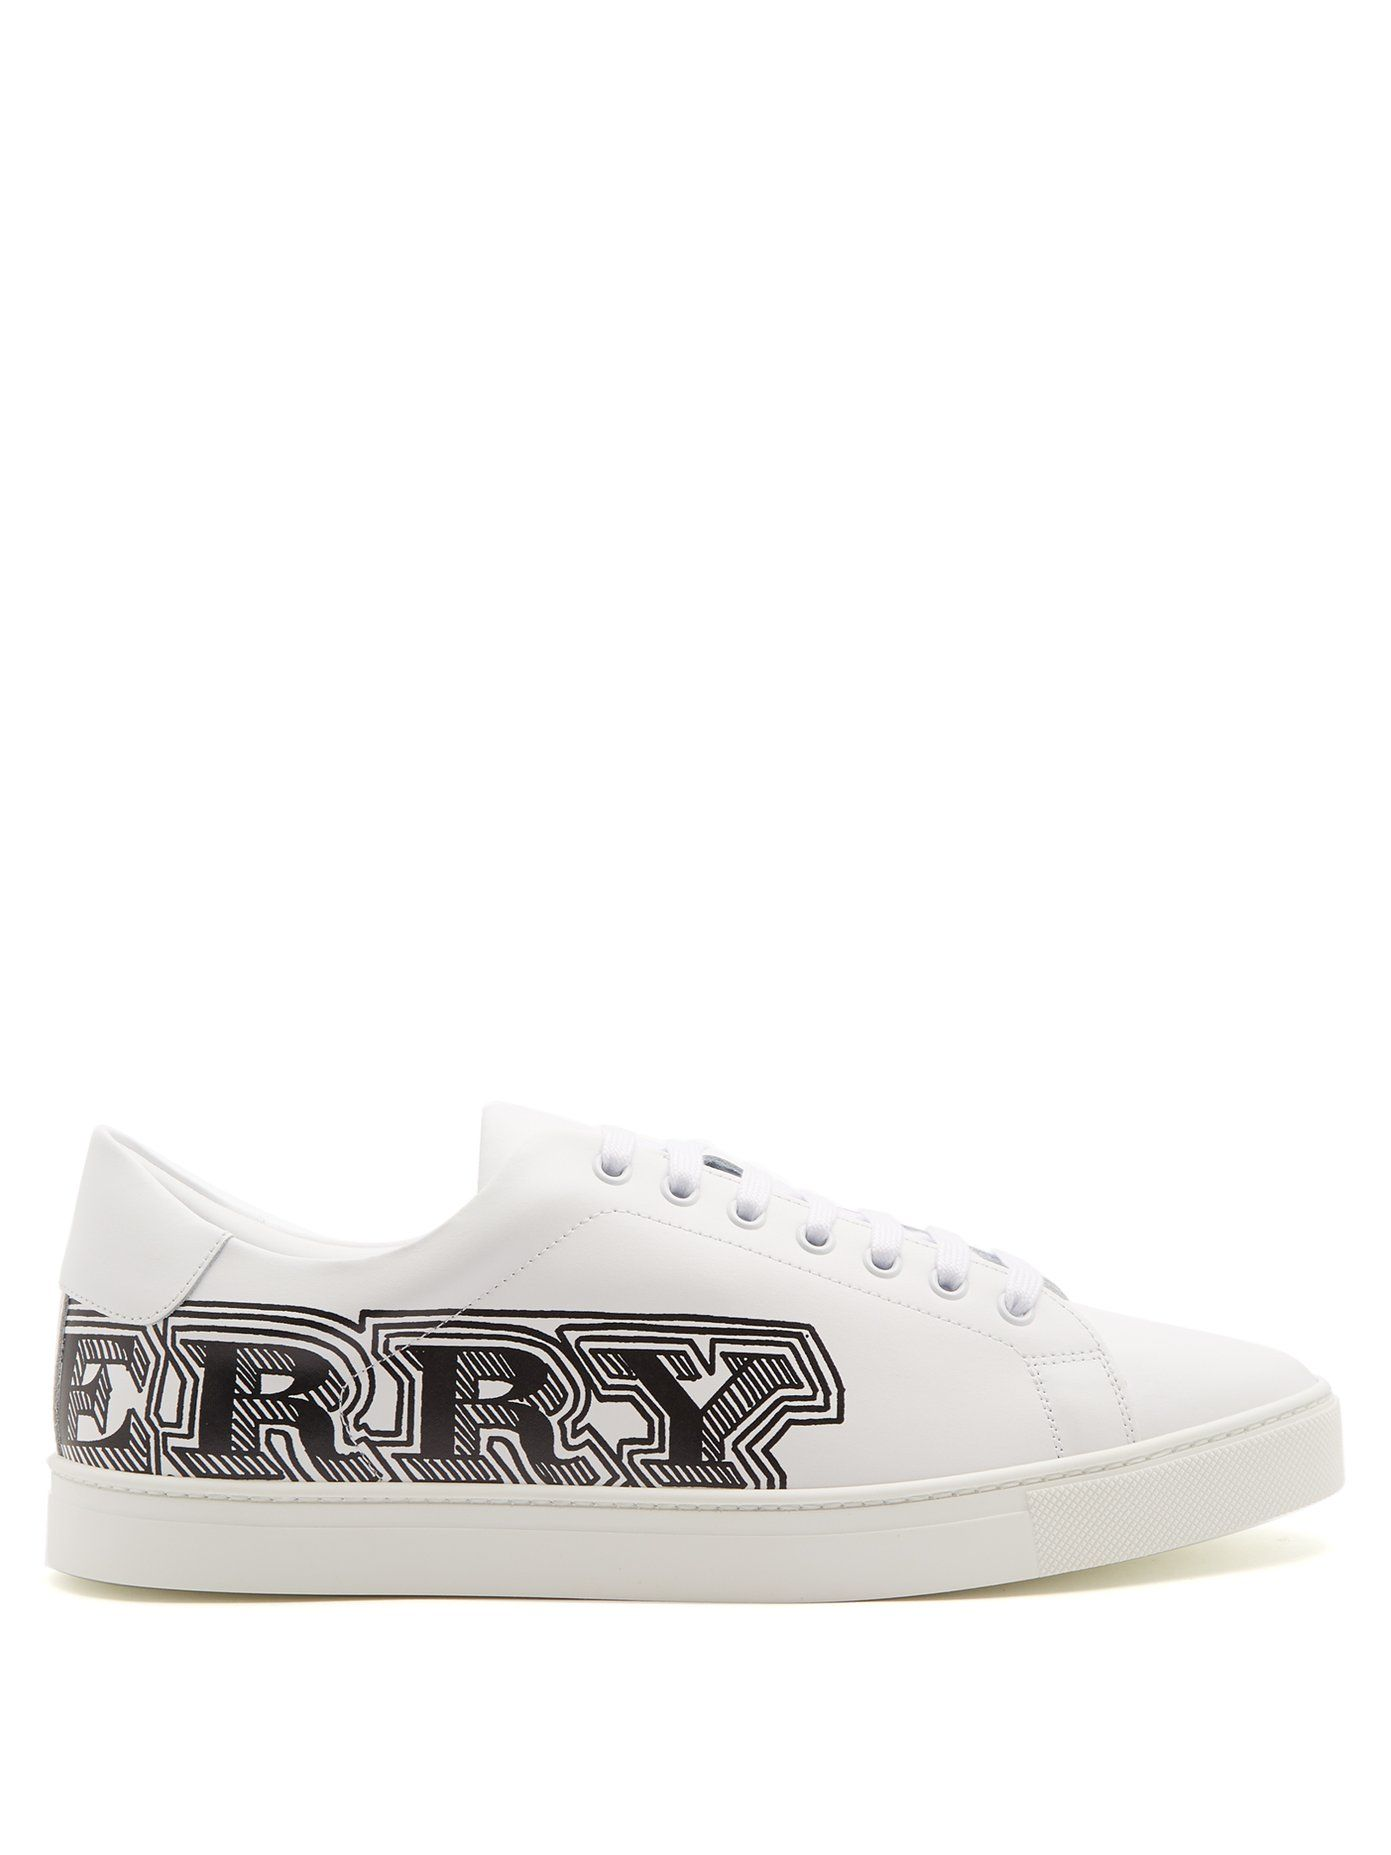 Logo Print Leather Sneakers - Black Burberry Q54qCl